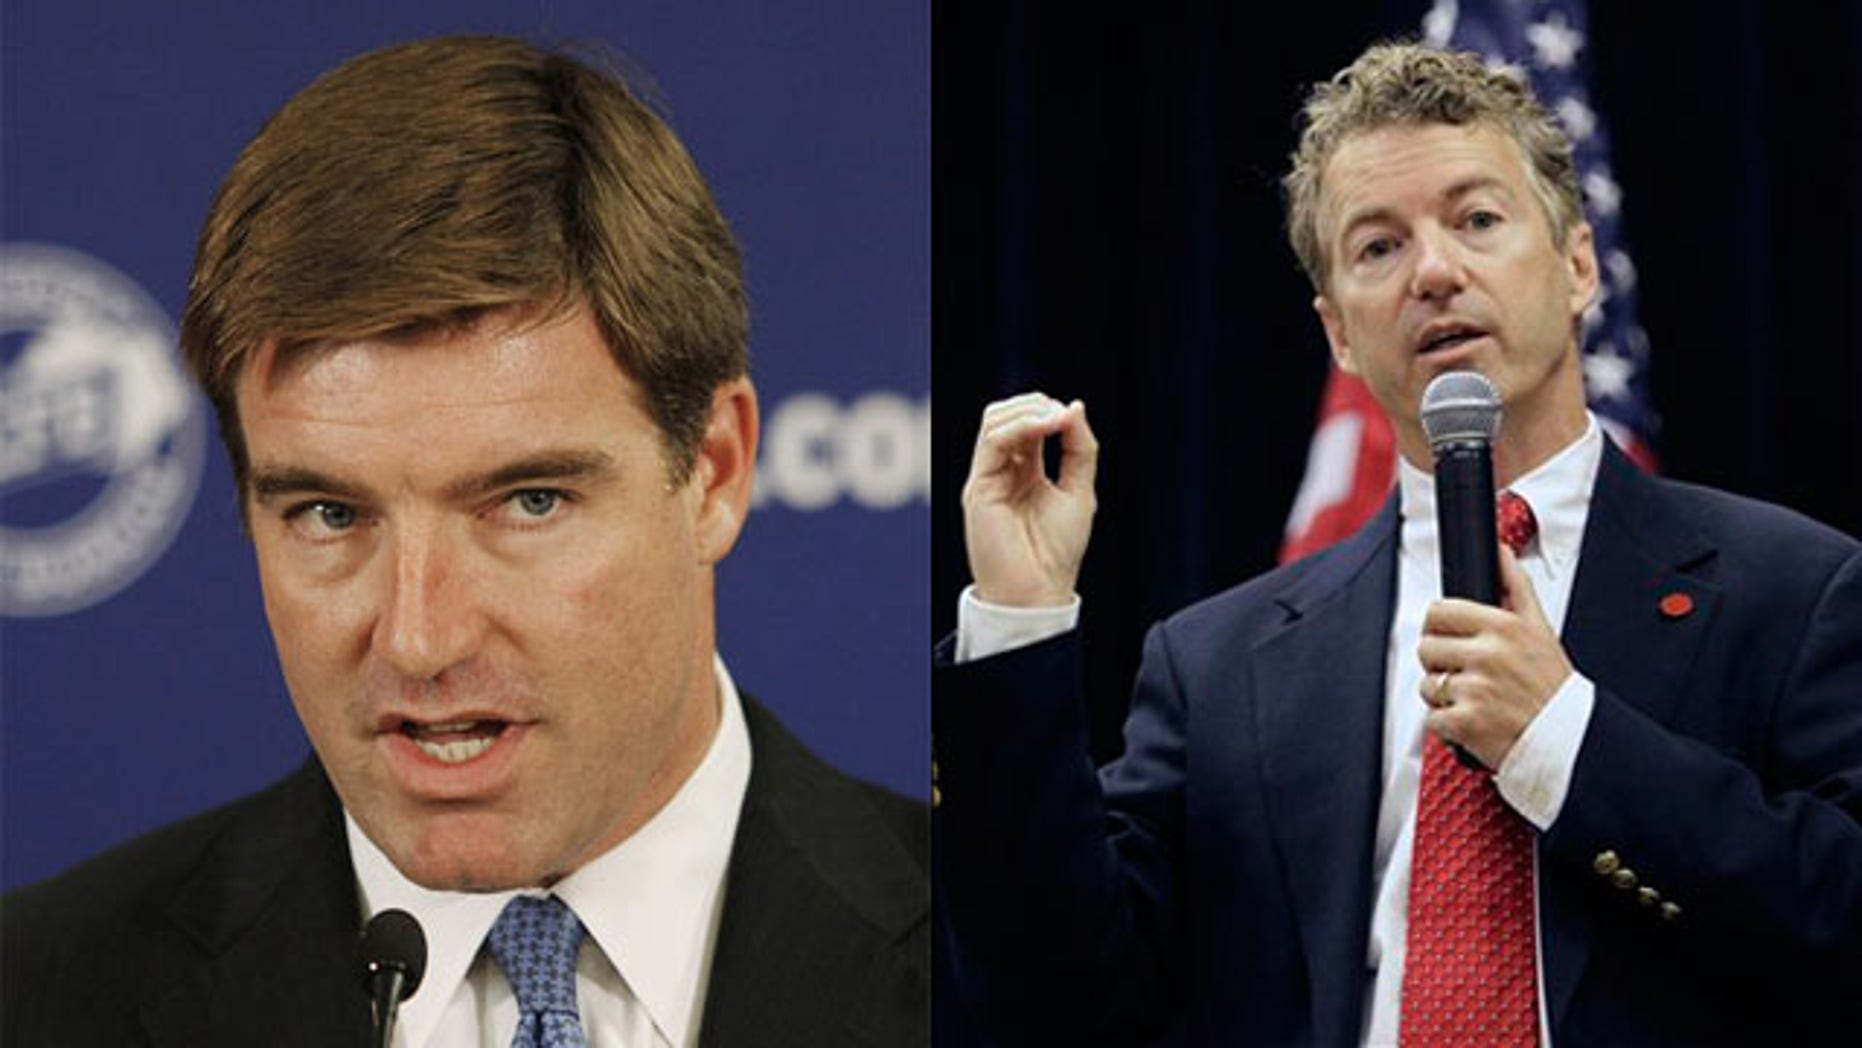 Shown here are Kentucky Senate candidates Jack Conway, left, and Rand Paul. (AP Photos)